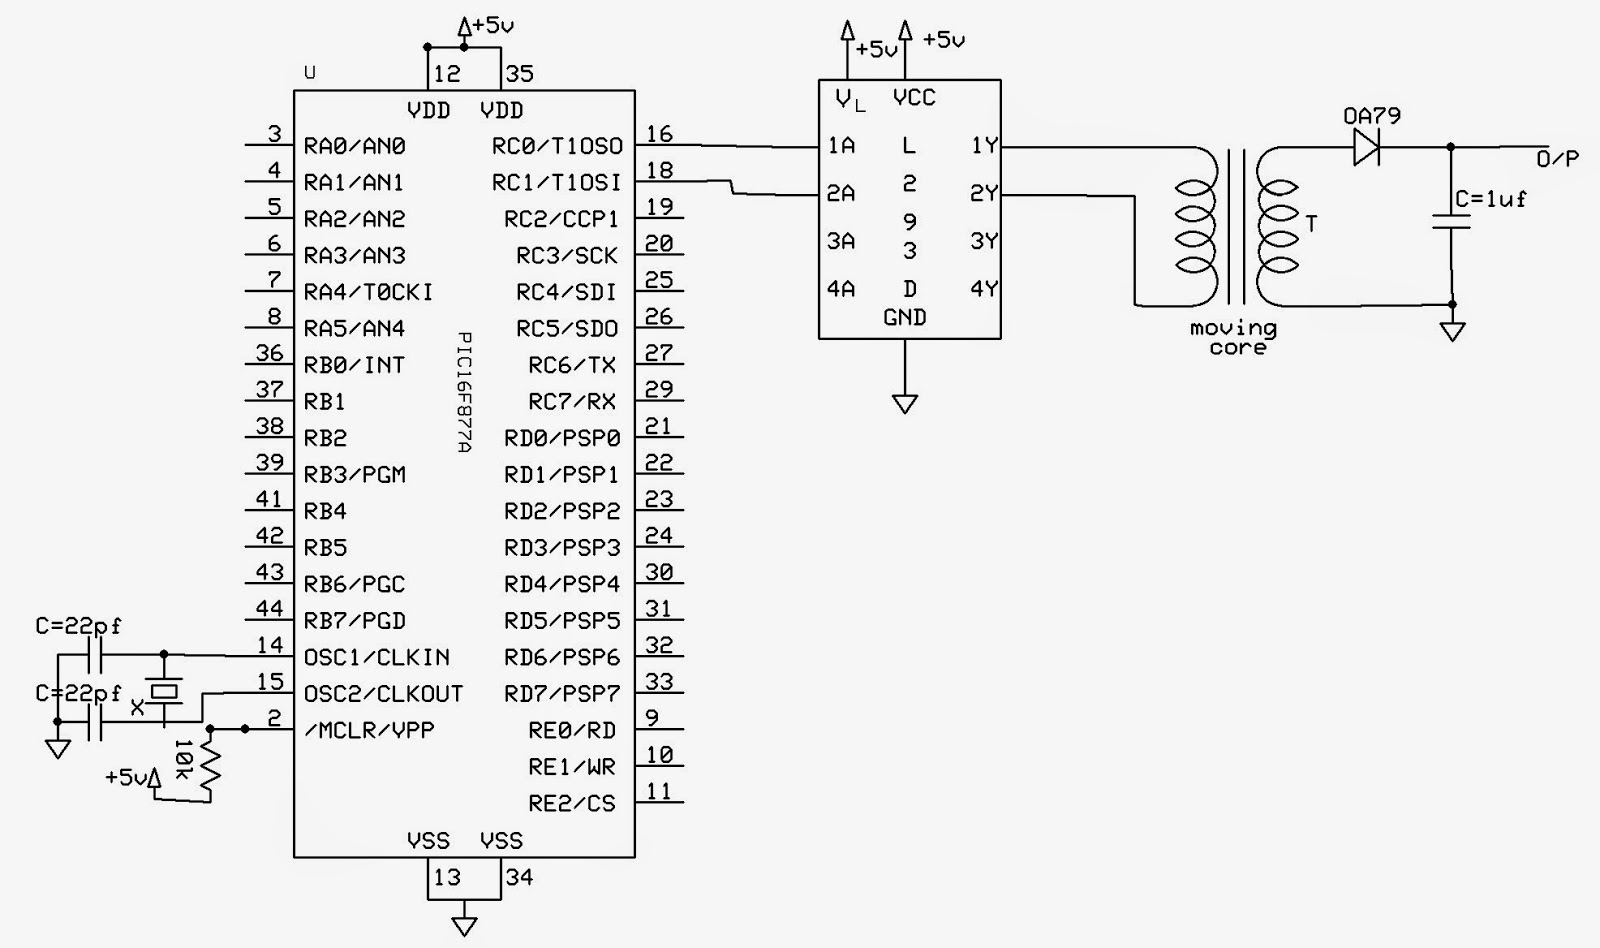 medium resolution of plc to lvdt wiring diagram wiring library proximity sensor wiring diagram lvdt rs232 wiring diagram